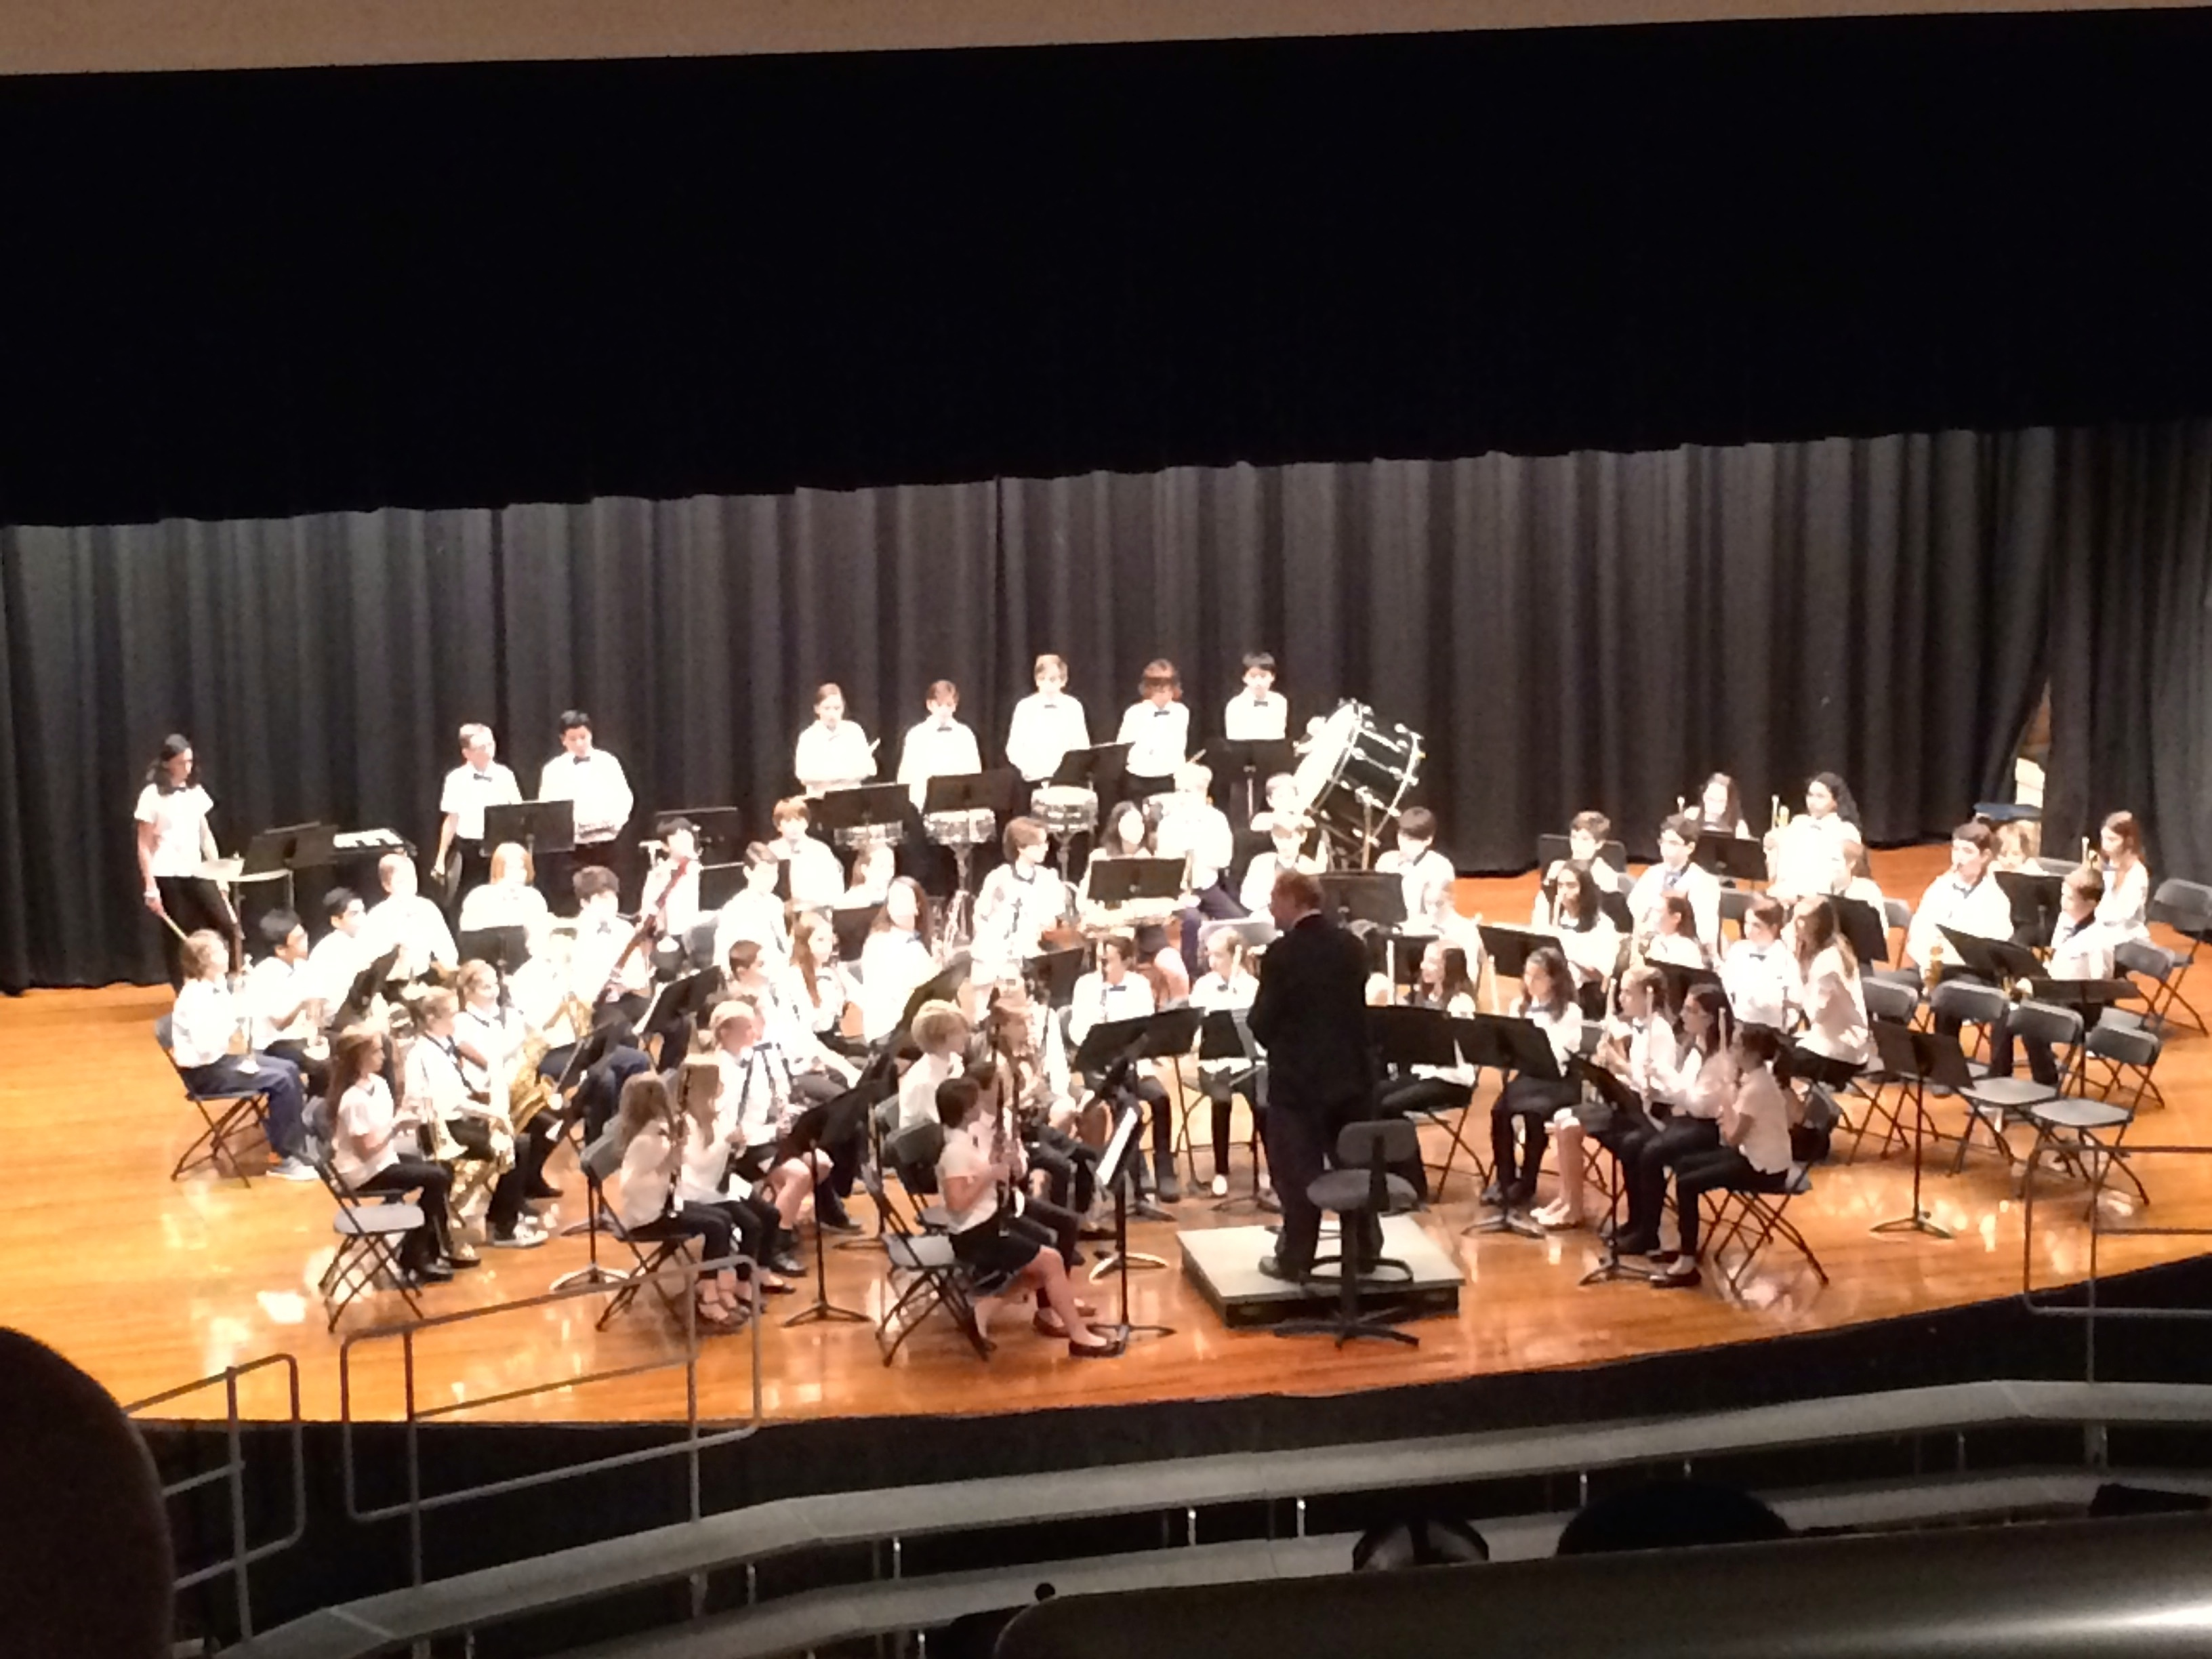 ae37afd1af093dc860c1_3630d5ddb4b3b3c7fef9_Joe_Bassin_leads_the_7th_grade_Band_at_their_concert_December_8th.jpg